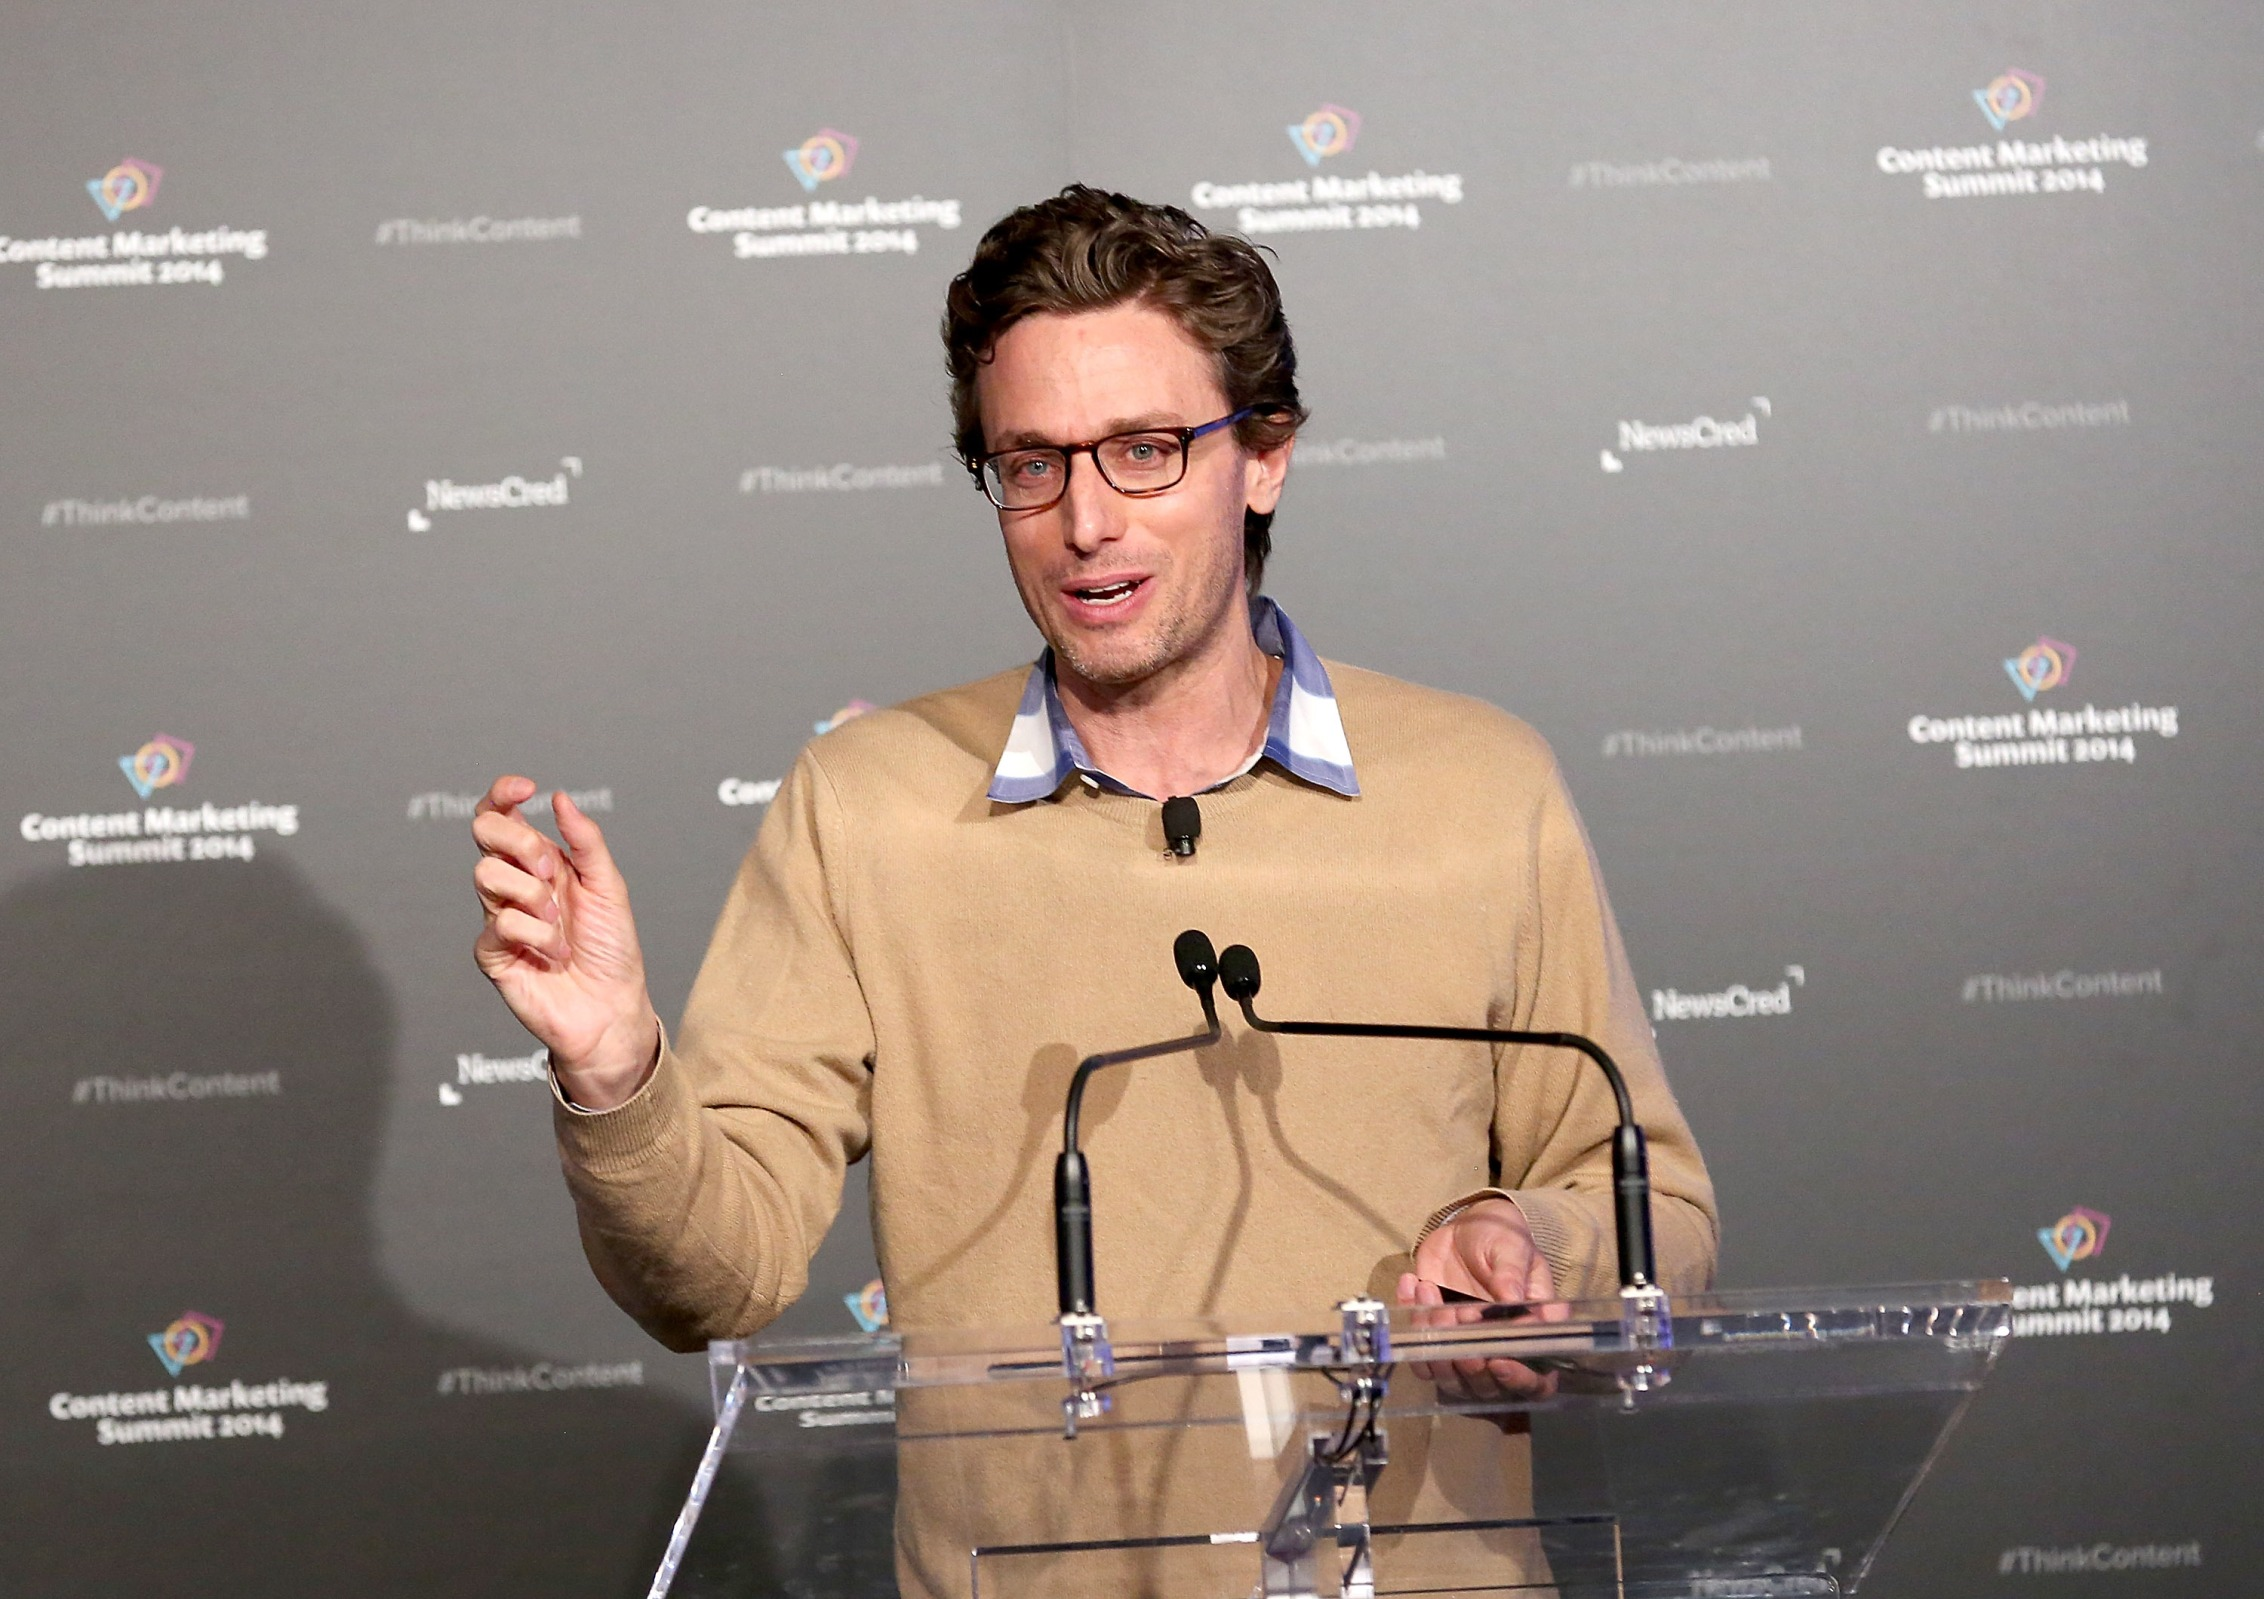 Jonah Peretti, CEO, Buzzfeed speaks at NewsCred's Content Marketing Summit at Metropolitan Pavilion on September 18, 2014 in New York City.